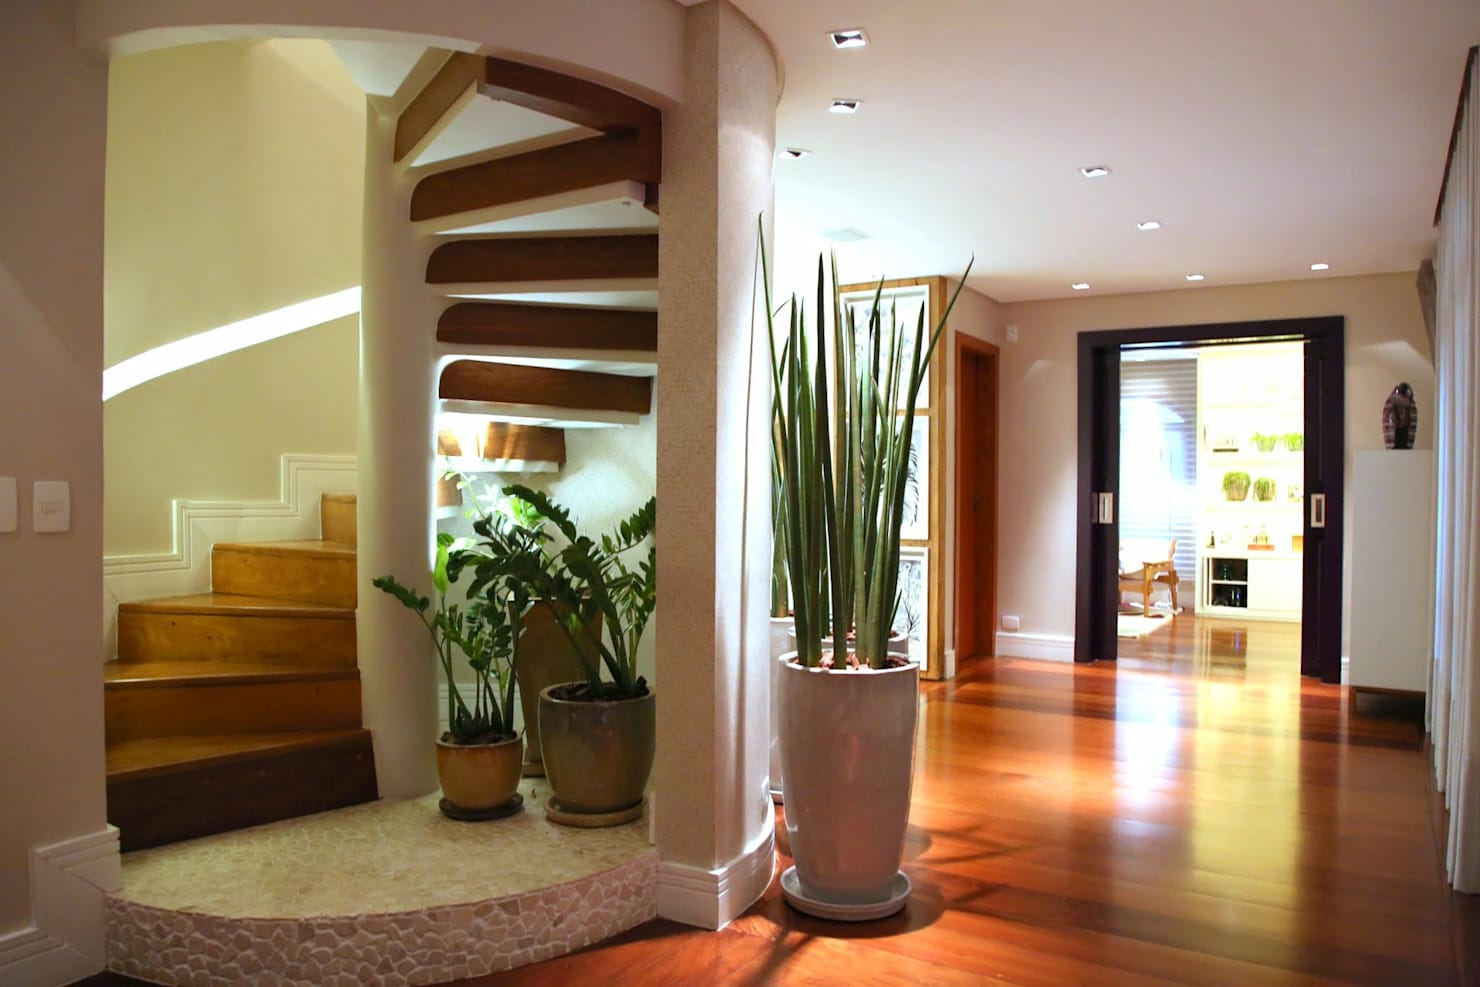 Alluring aspects of a fabulous home